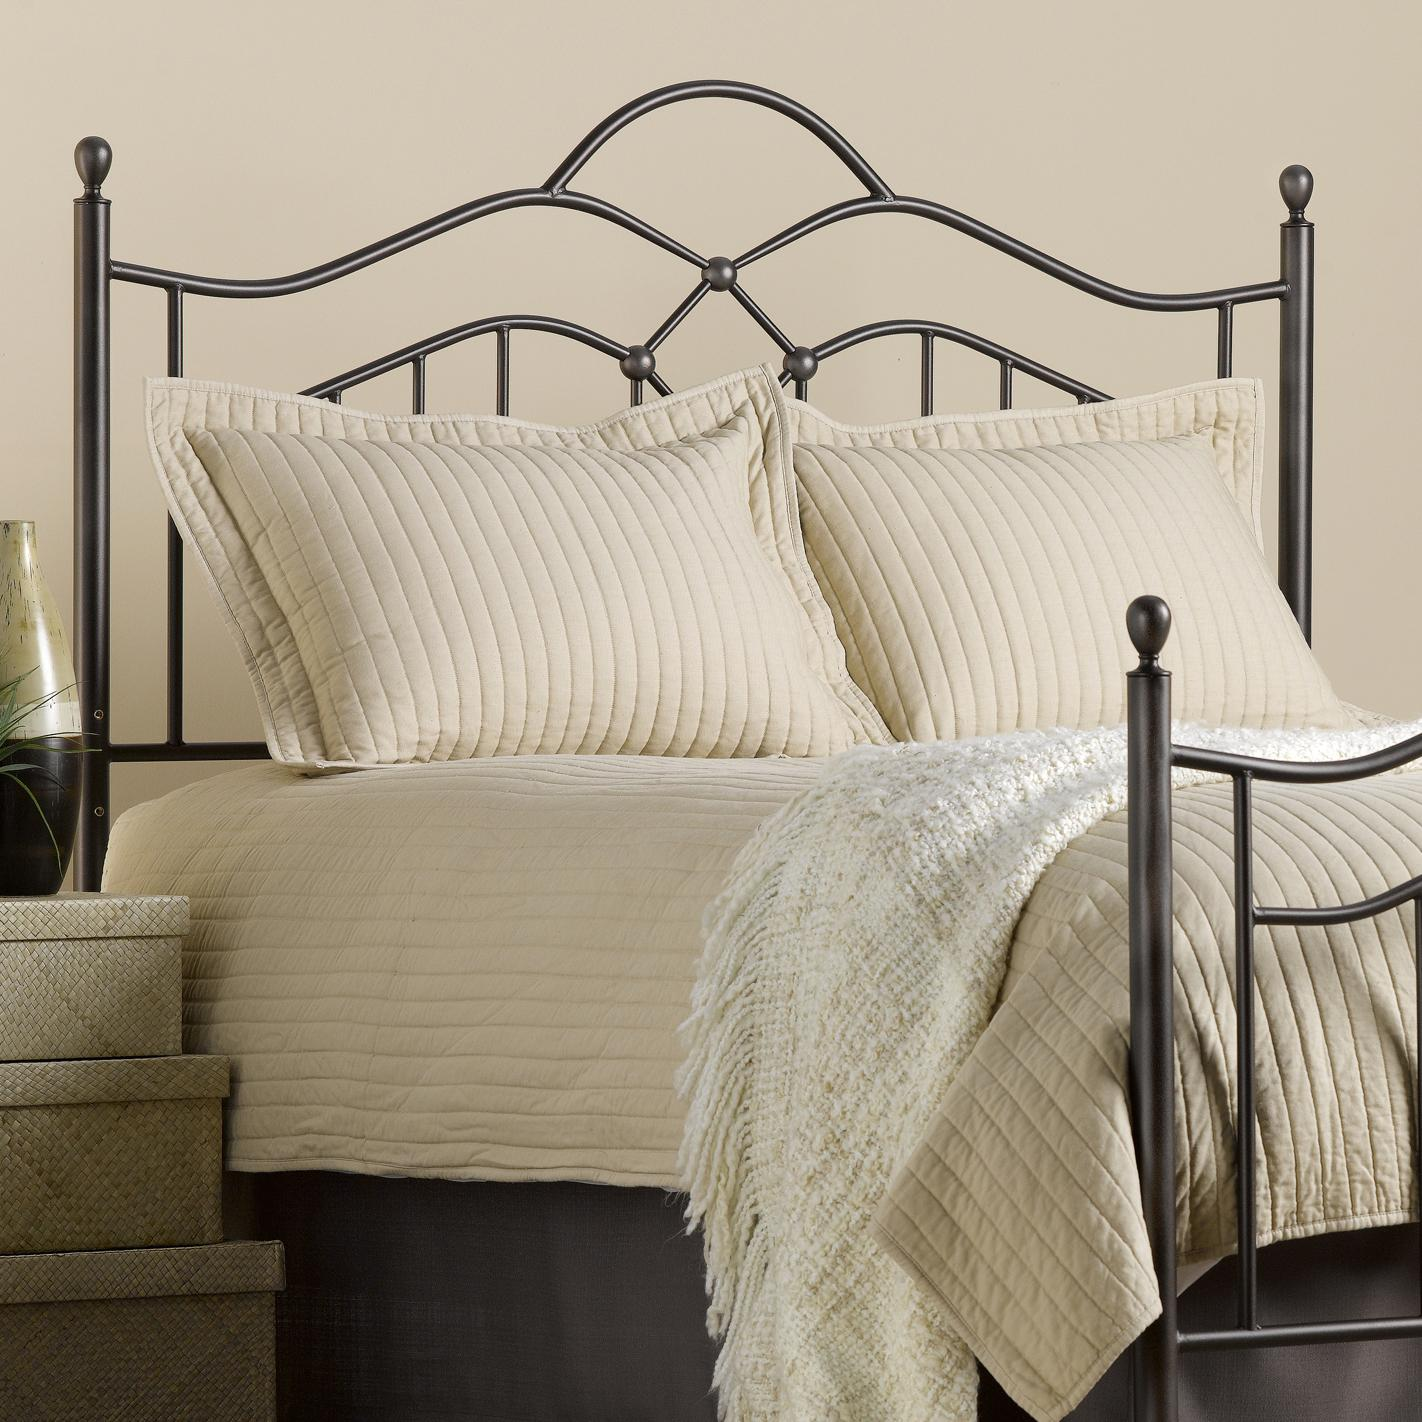 Metal Beds Full/Queen Oklahoma Headboard by Hillsdale at Darvin Furniture